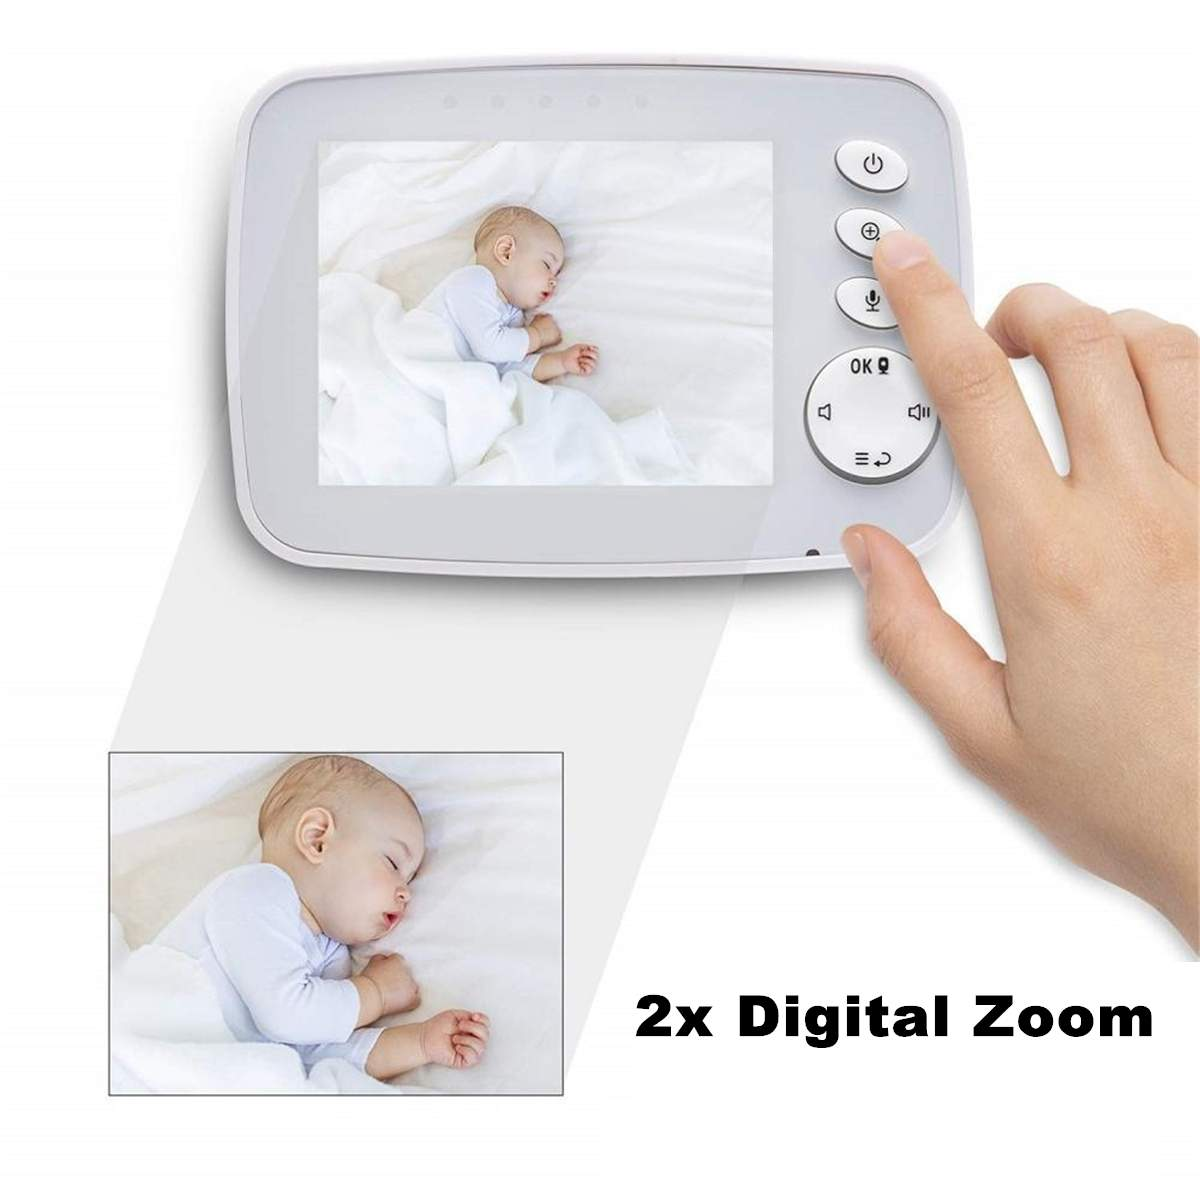 Children Monitor Wireless Digital Video Kids Baby Sleeping Monitor LCD Display Screen Audio Video Receiver Night Vision Home